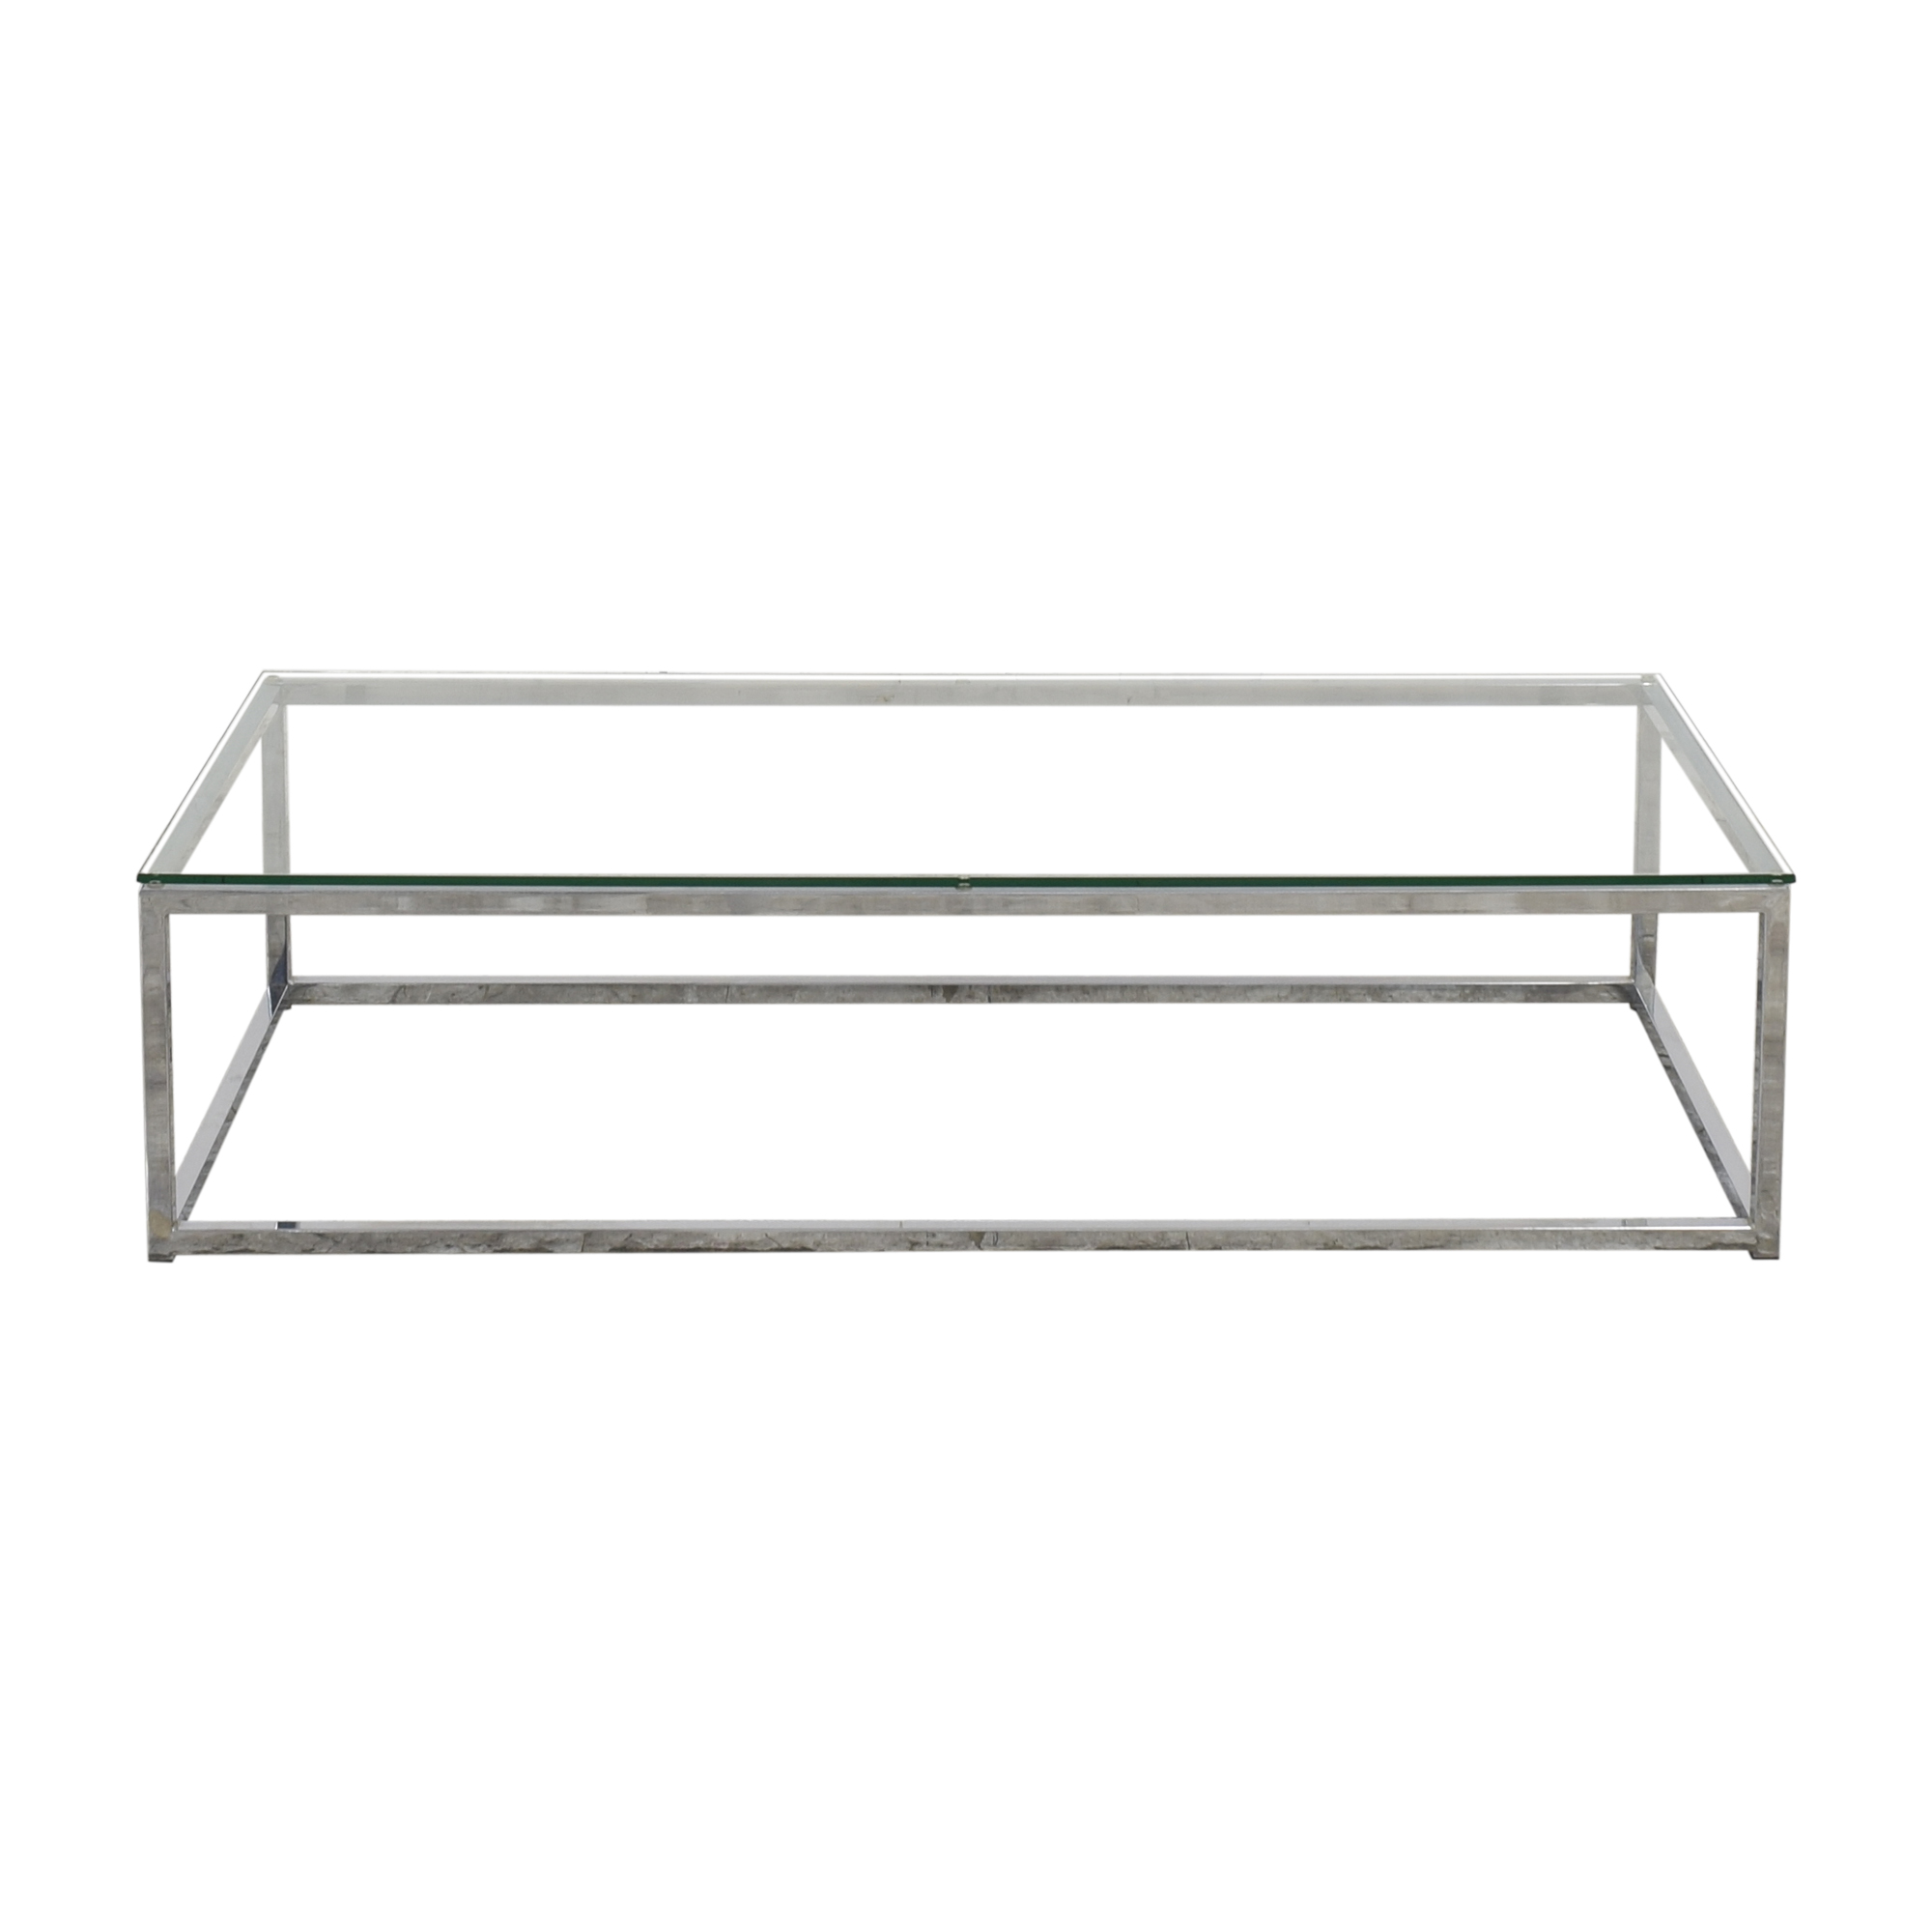 CB2 Smart Coffee Table / Tables